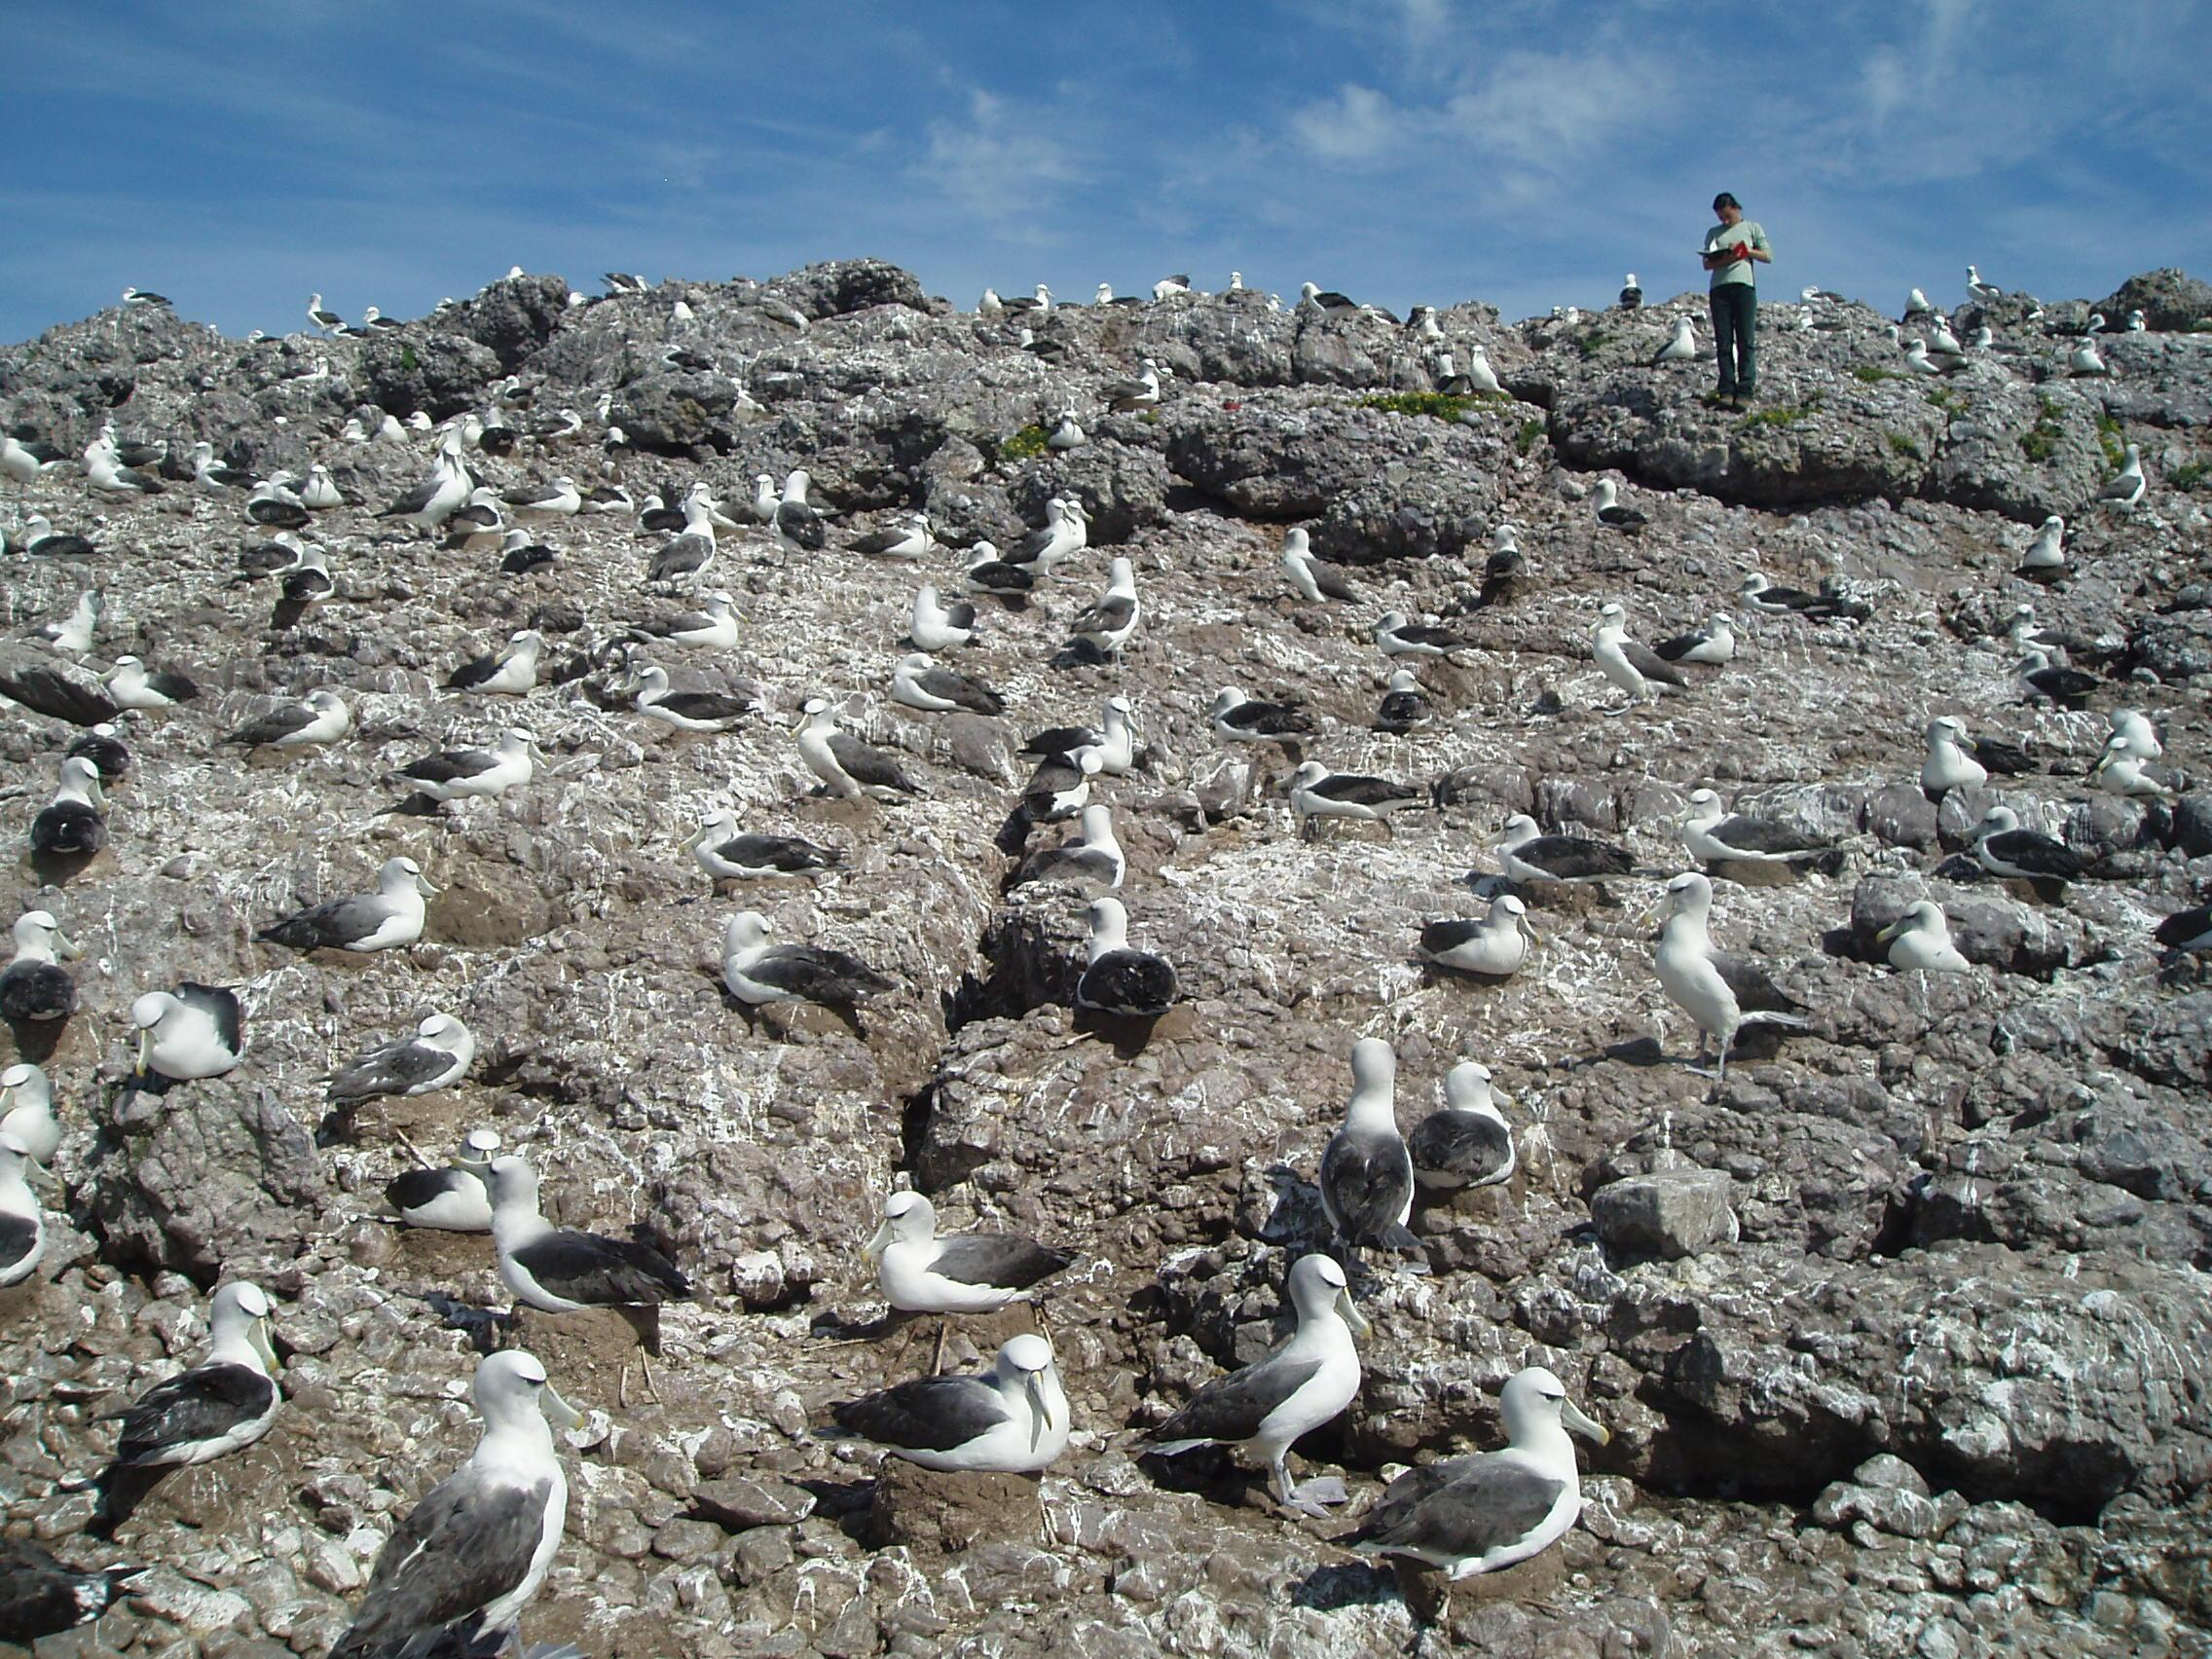 A shy albatross colony